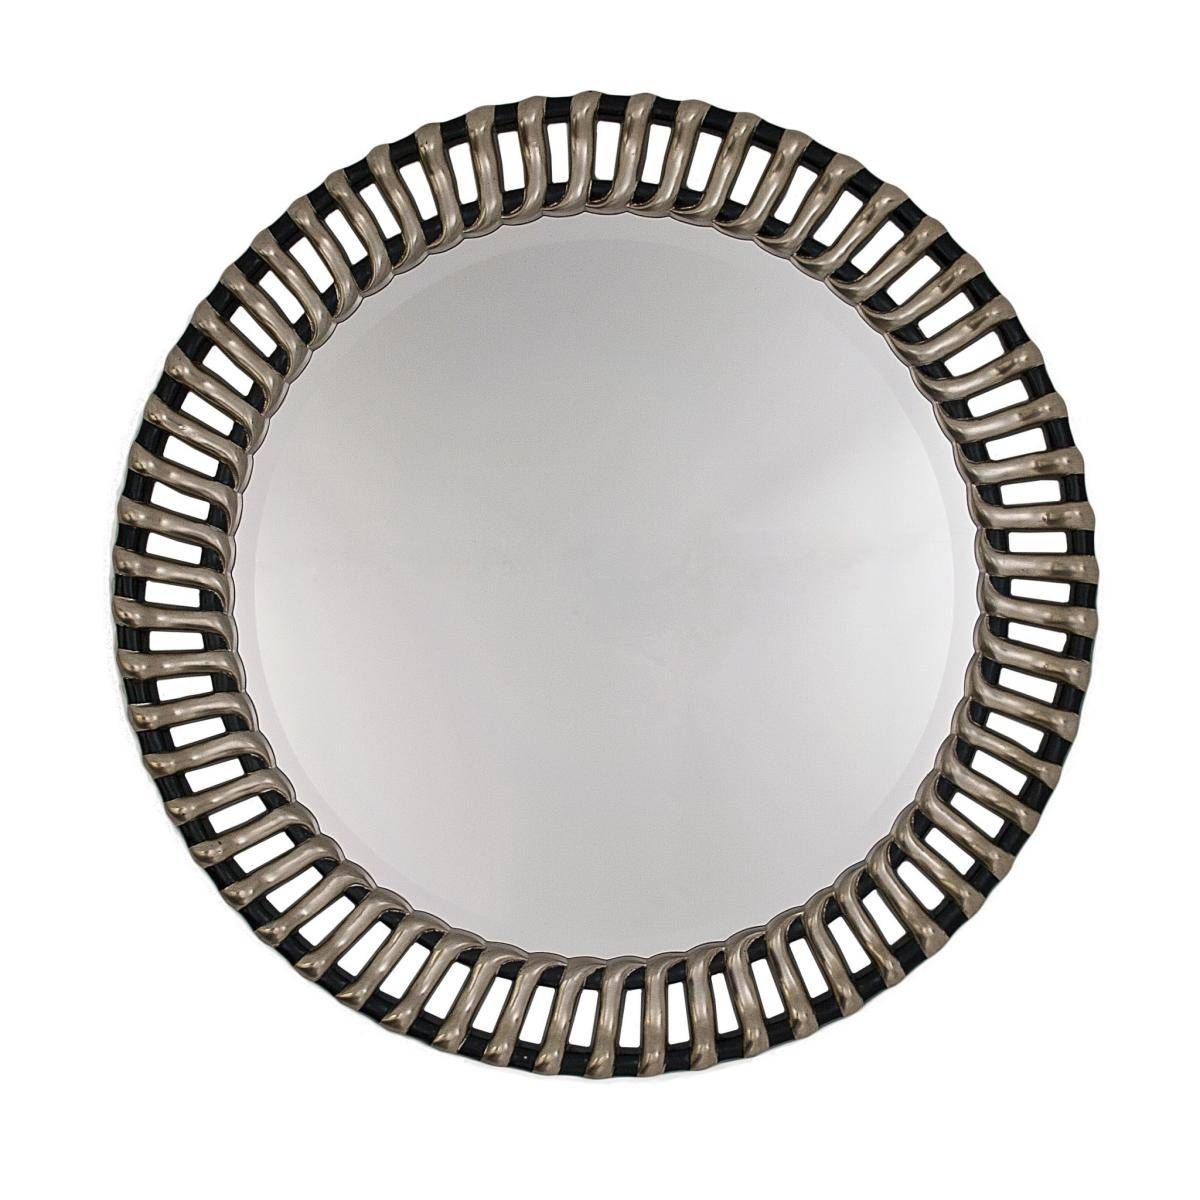 Round Ribbed Framed Silver And Black Bevelled Wall Mirror Intended For Silver Bevelled Mirrors (View 21 of 25)